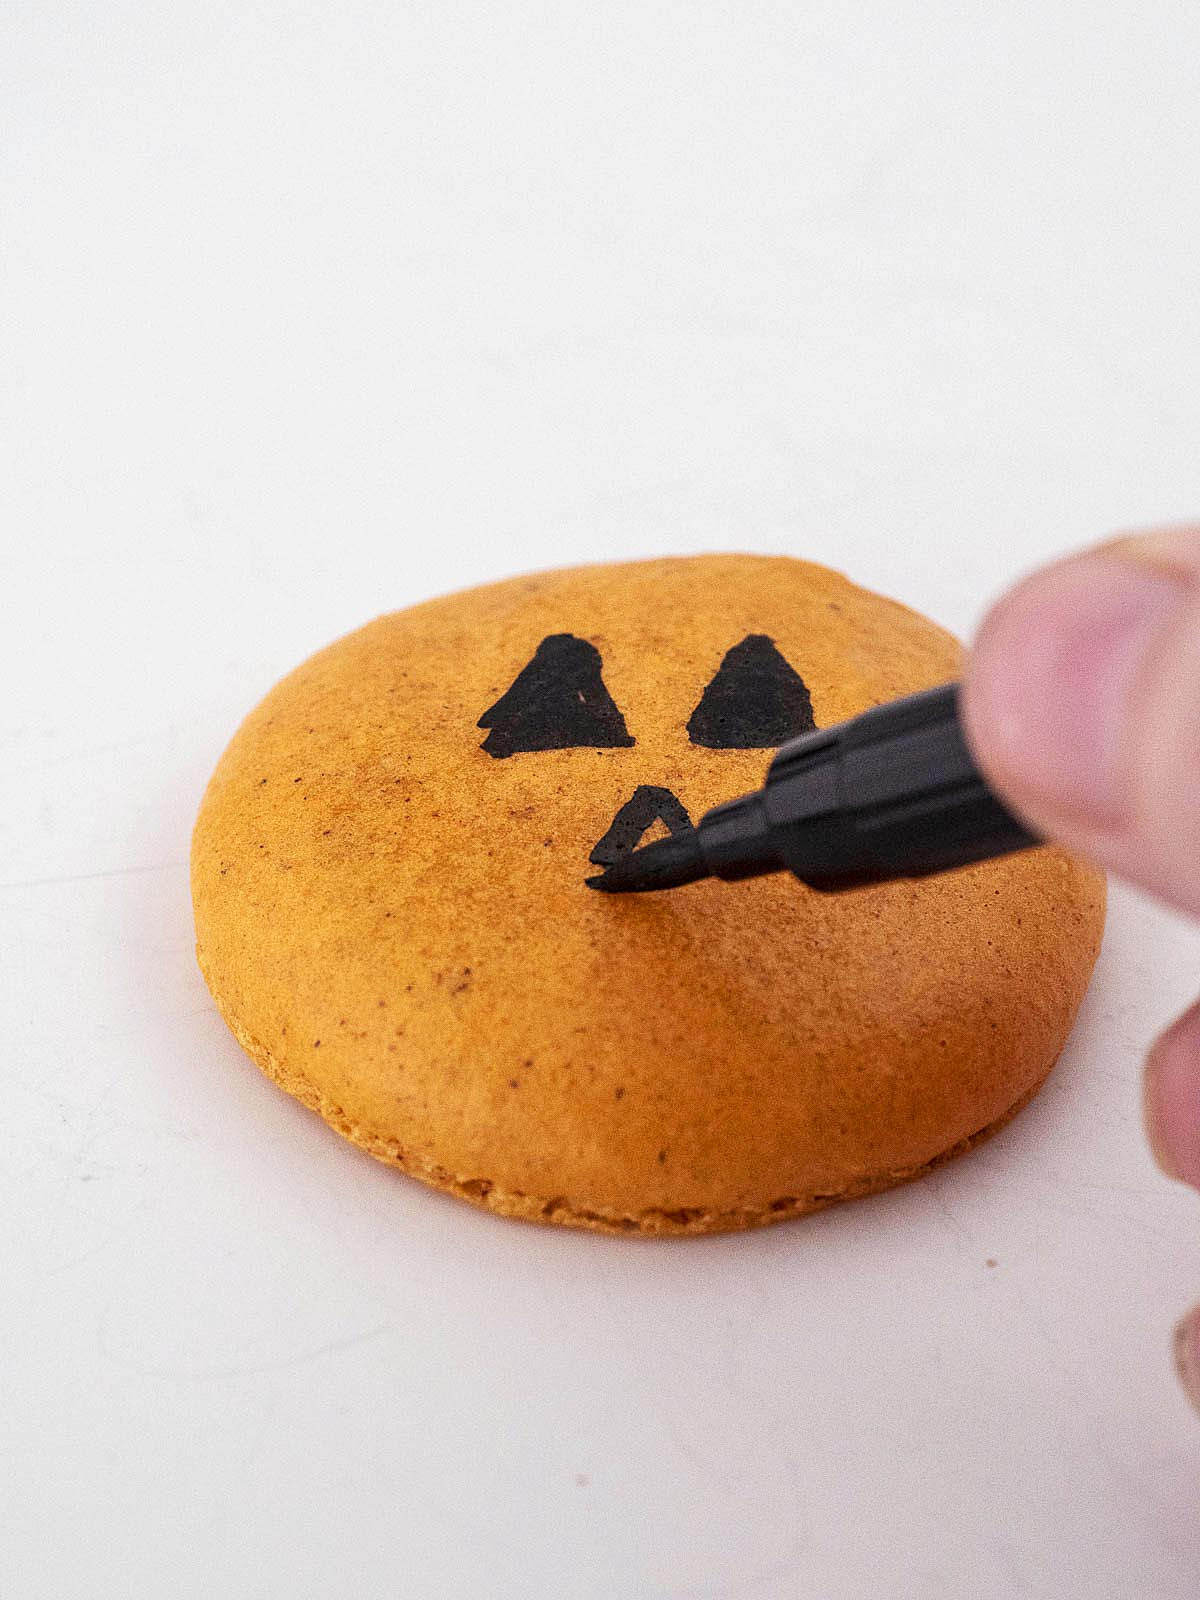 Drawing a face on a macaron shell with a food coloring pen.